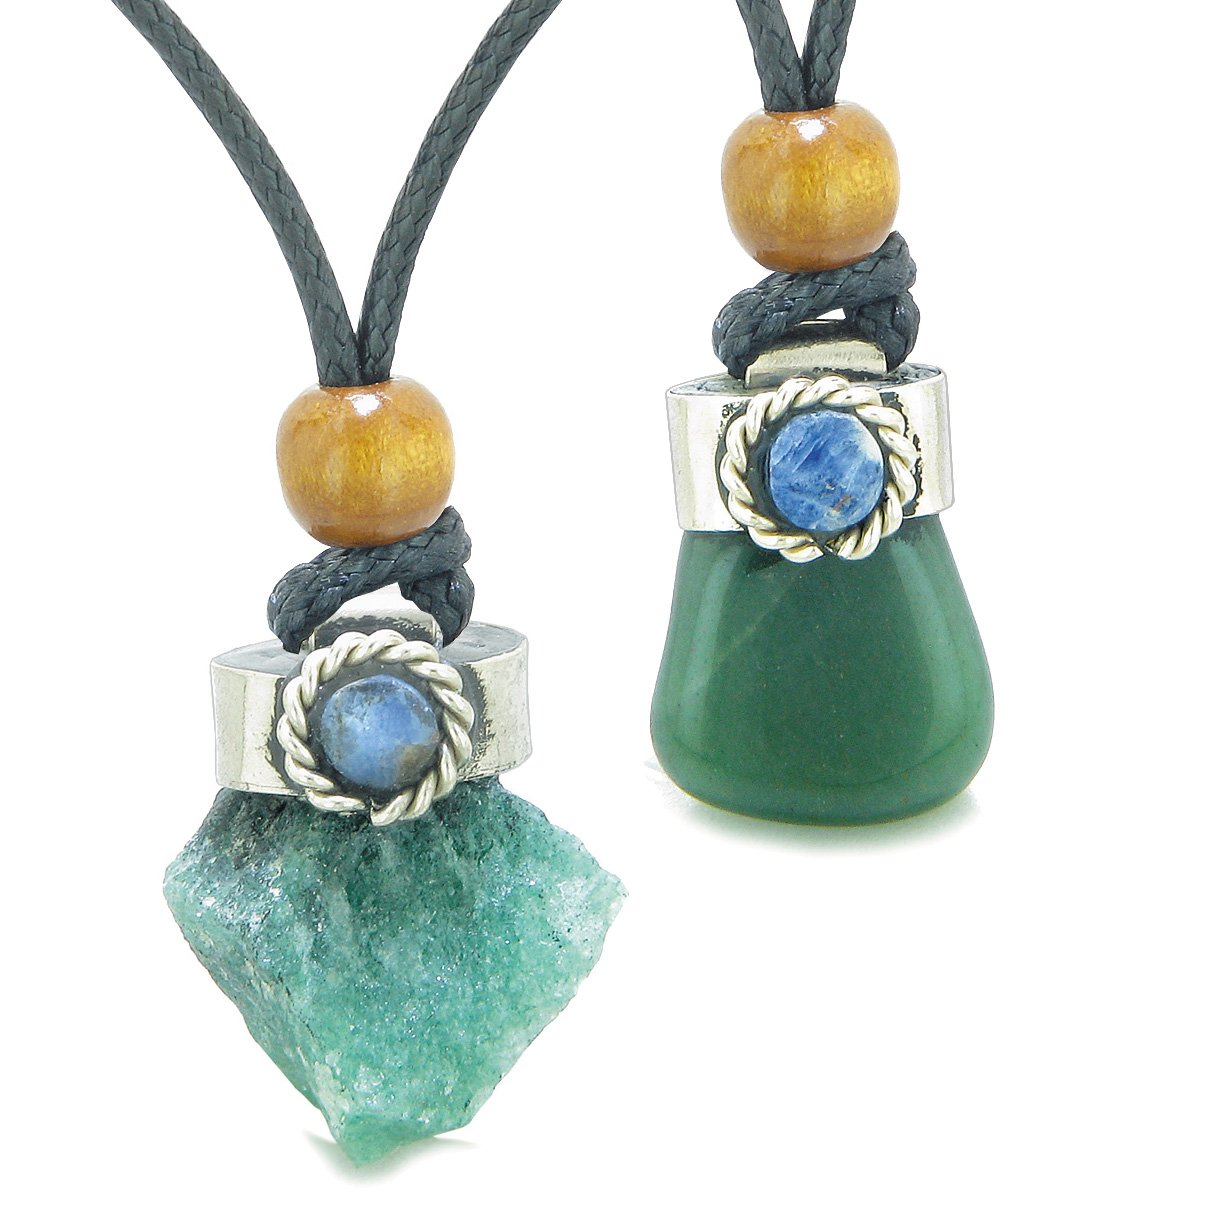 Handcrafted Free Form Tumbled and Rough Green Quartz Sodalite Cabochon Love Couples Amulet Set Necklaces